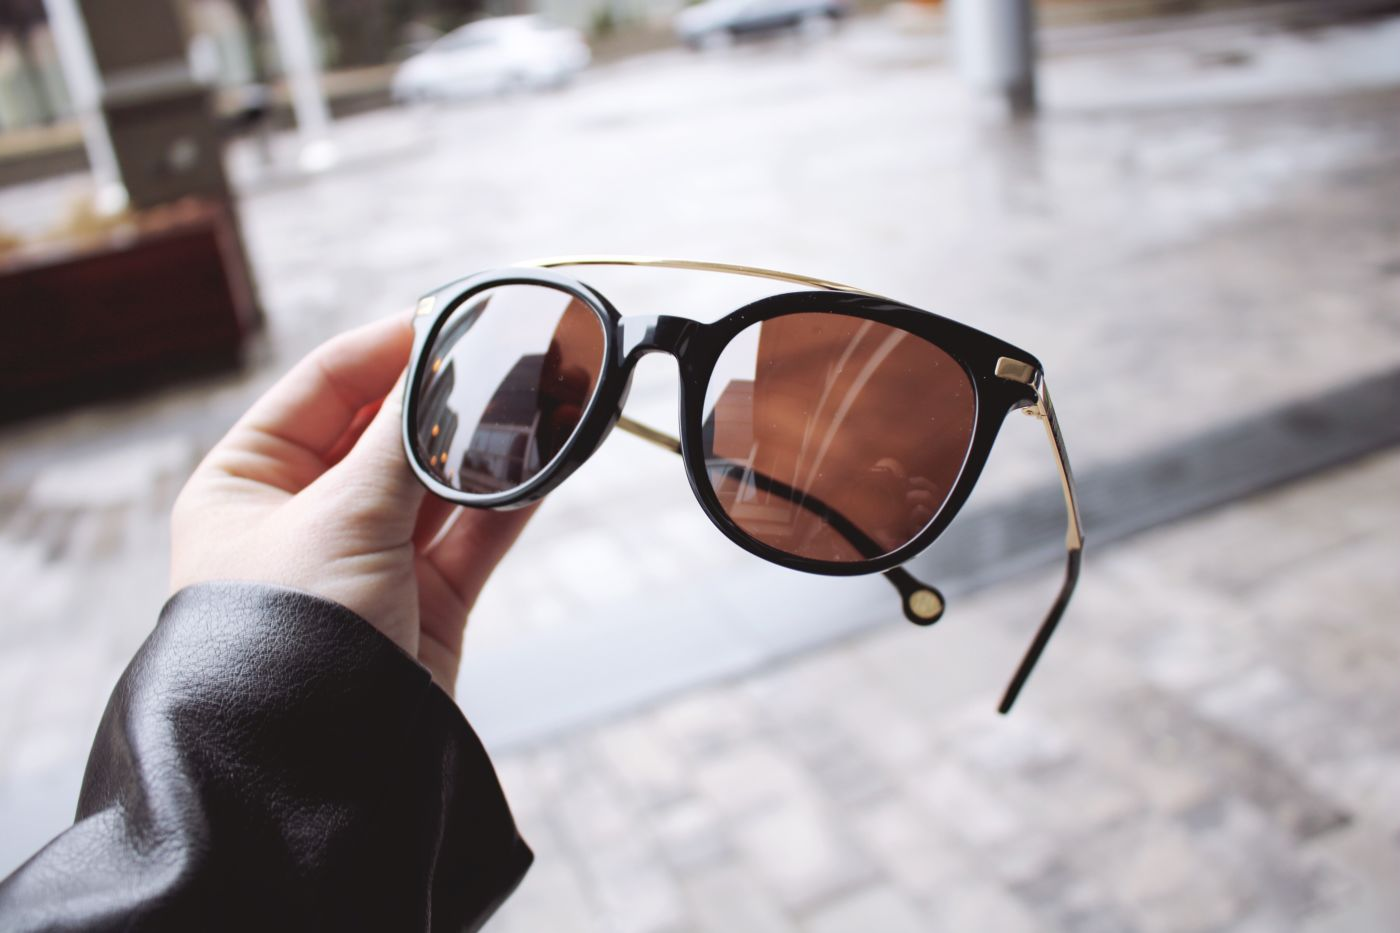 carolina herrera, carolina herrera sunglasses, smart buy glasses, smart buy glasses shop, where to buy designer sunglasses, where to buy sunglasses online, spring 2019 trends, things I love for 2019, 2019 trends, aviator glasses